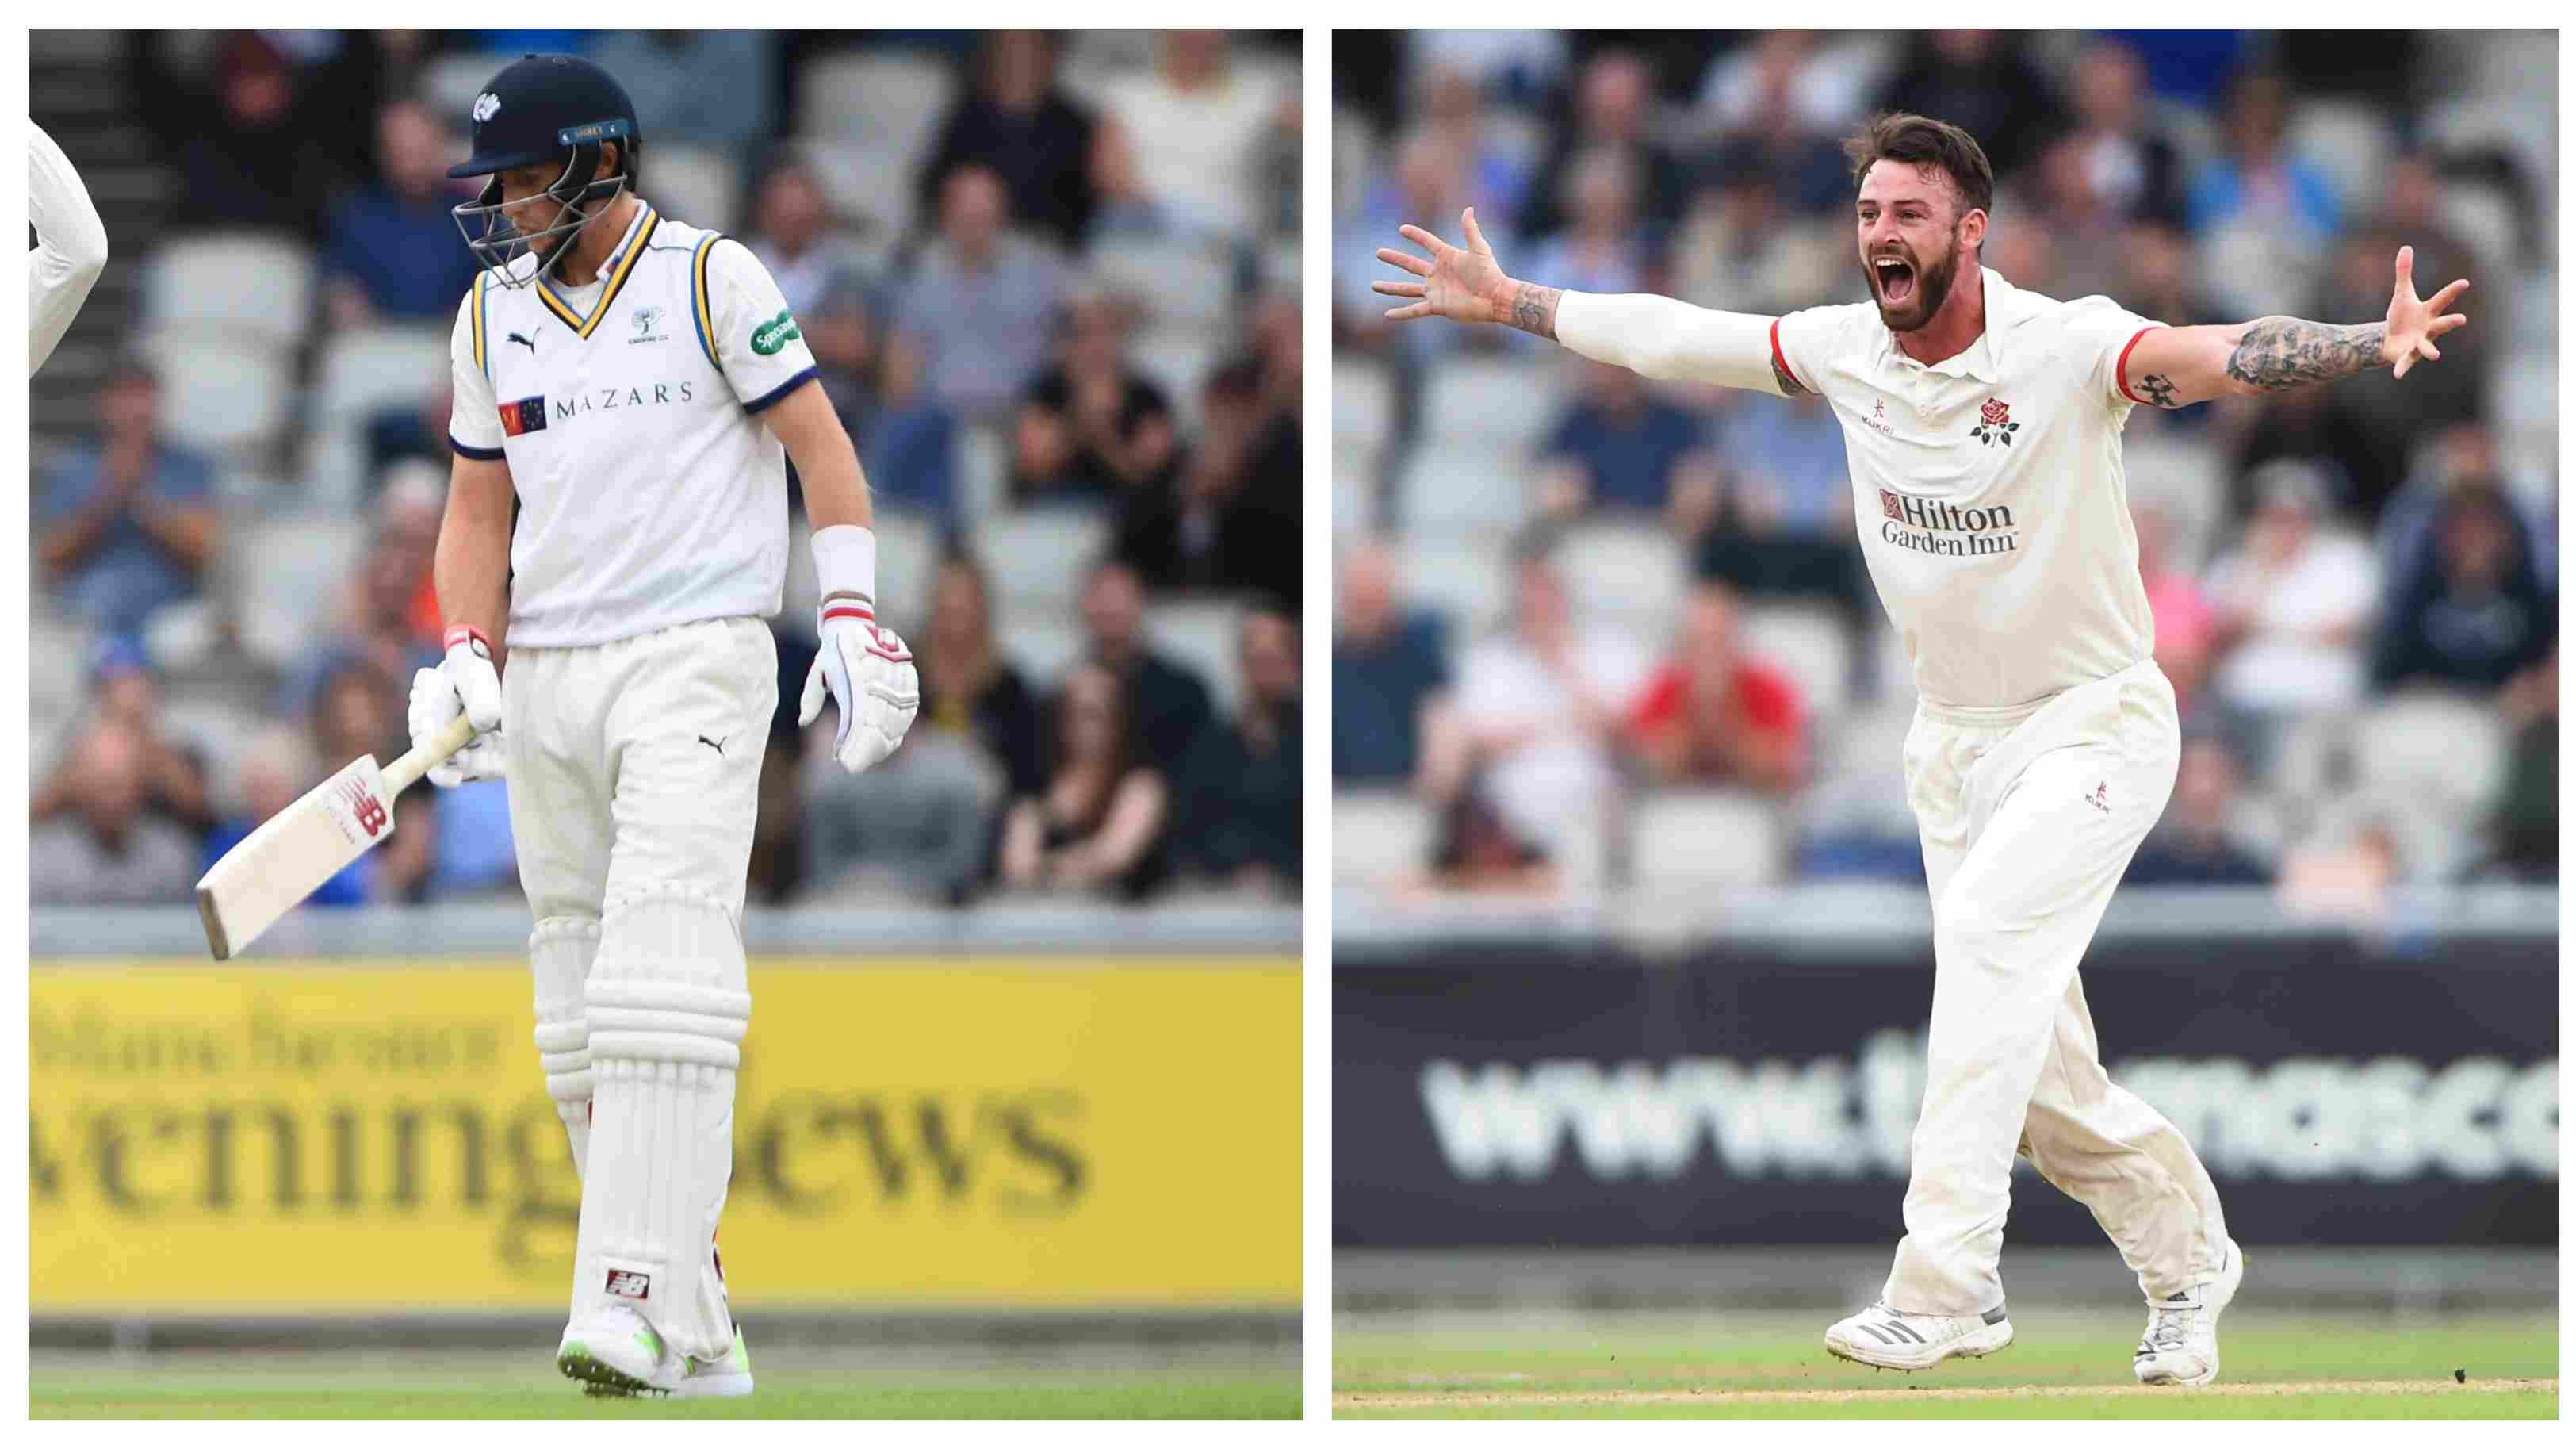 WATCH: Lancashire seamer dismisses Root, Williamson and Bairstow to claim a hat-trick in county cricket